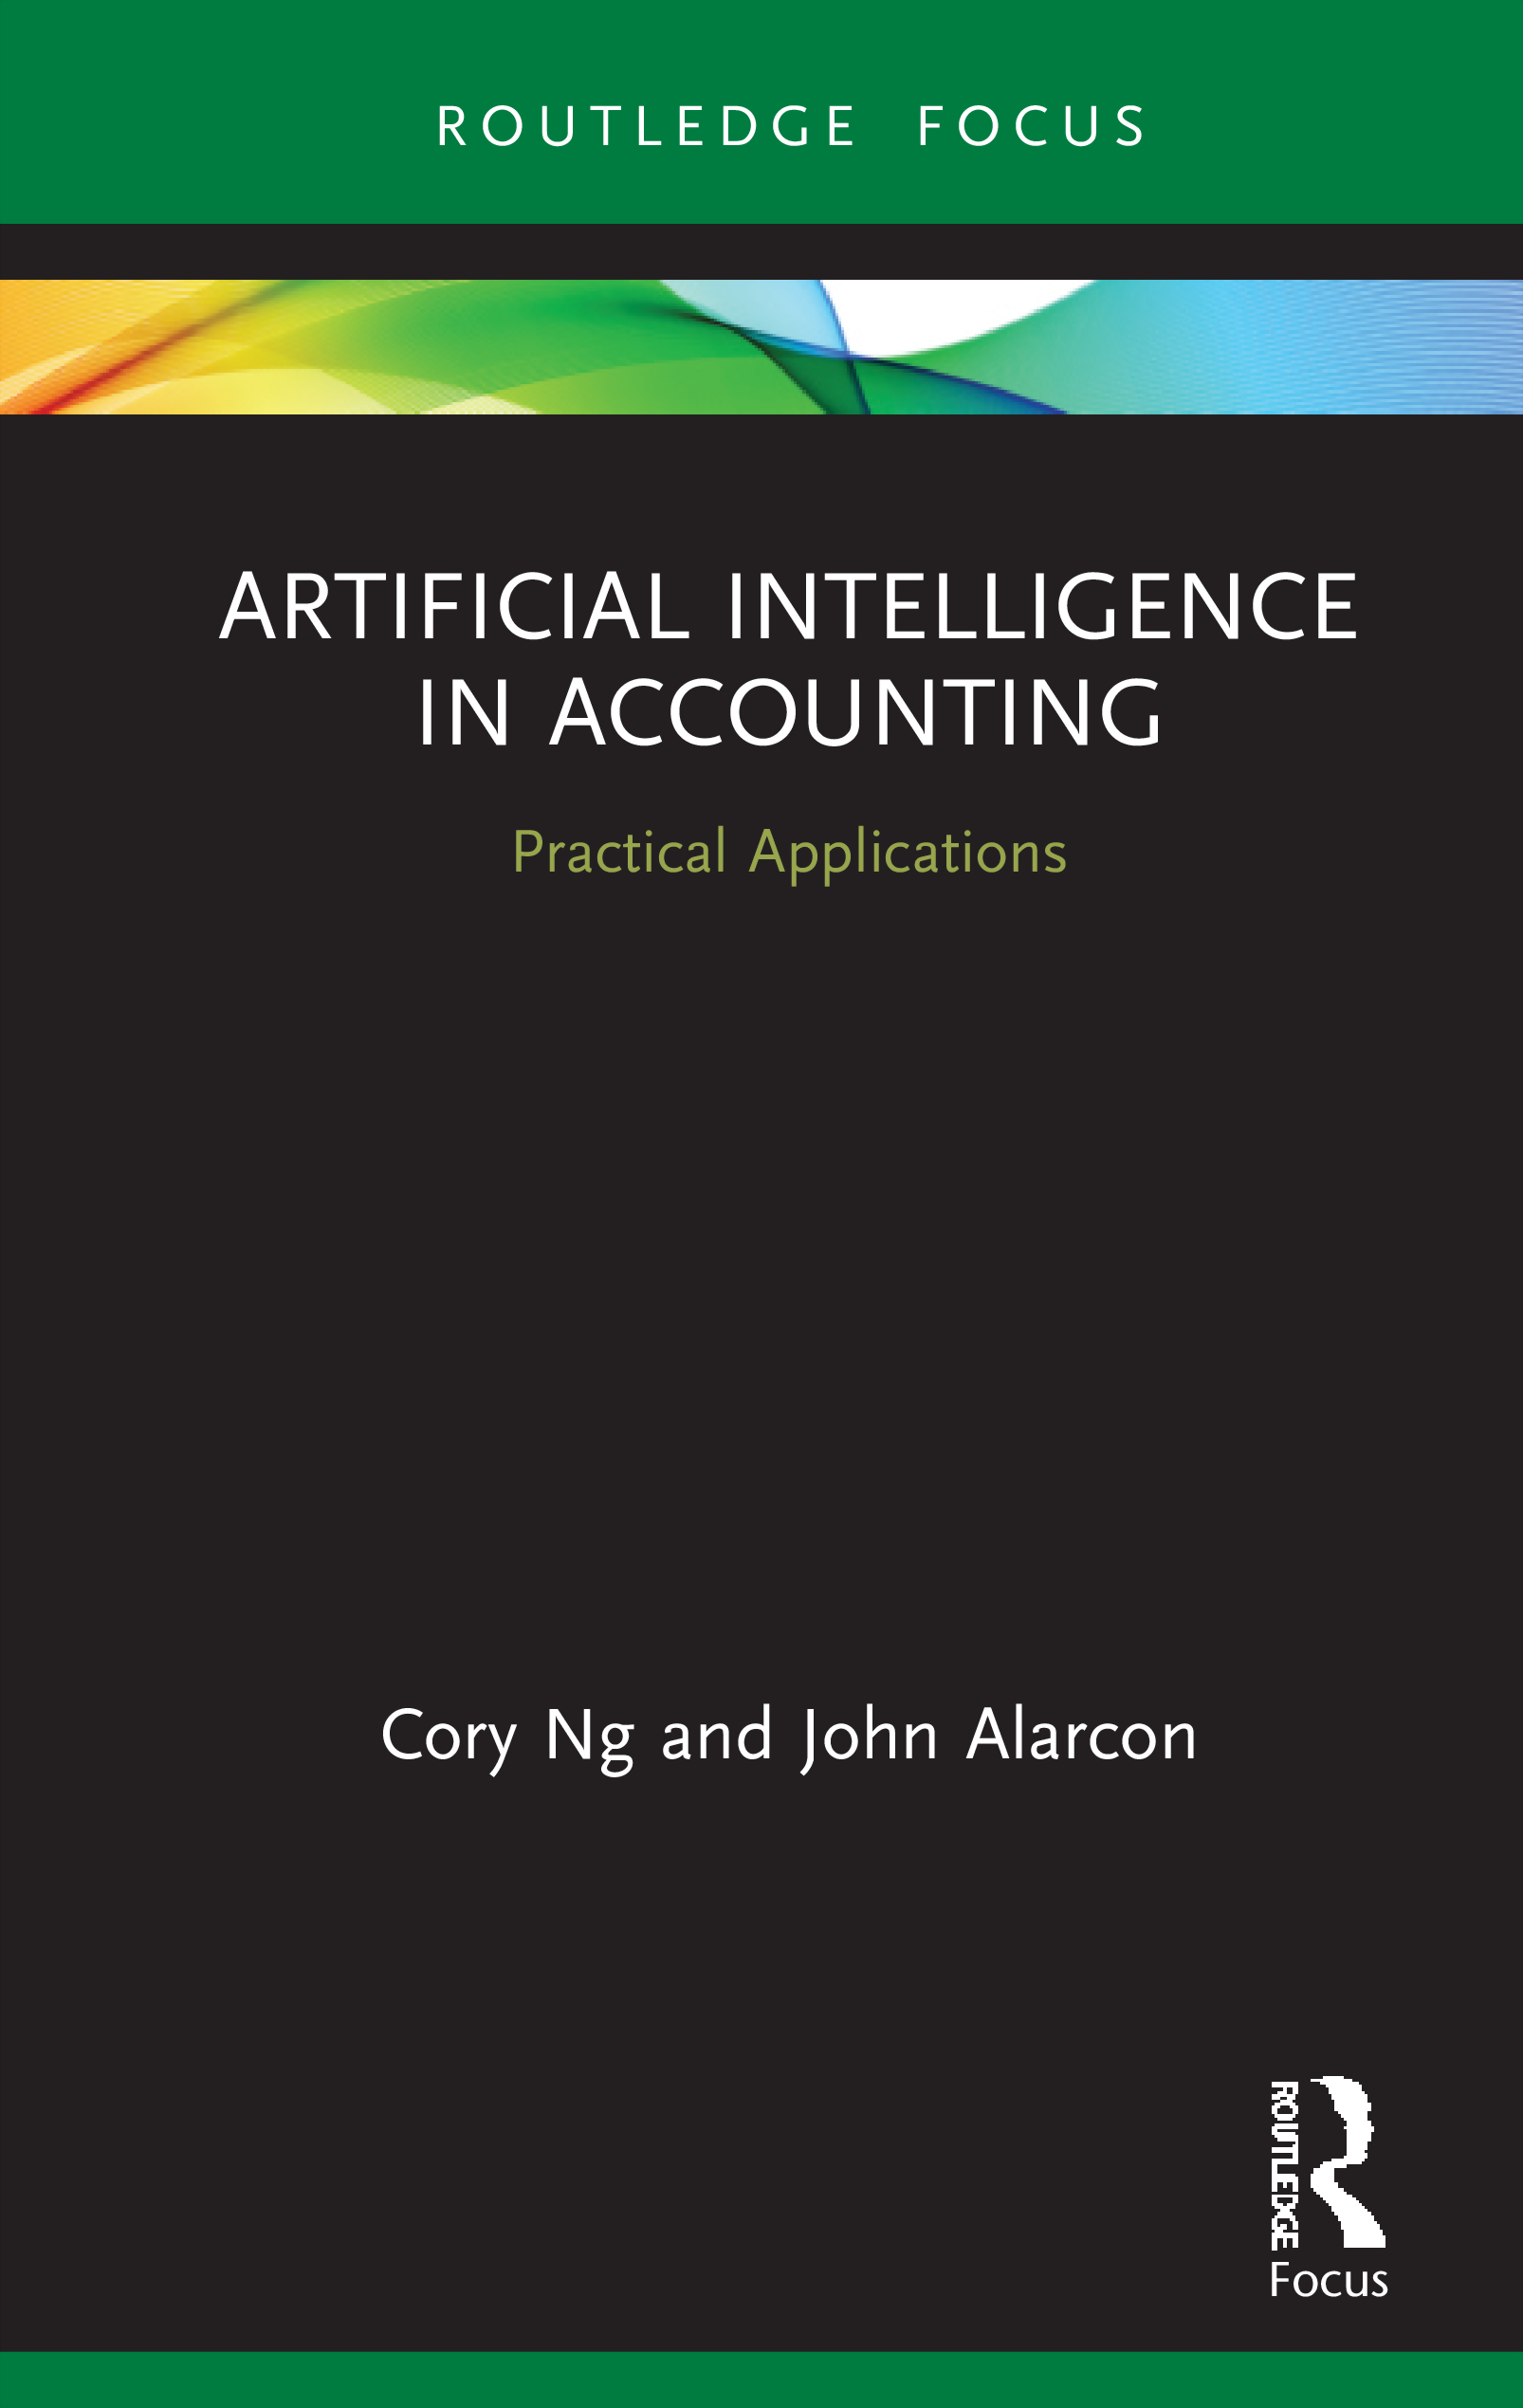 Applications of AI in Accounting